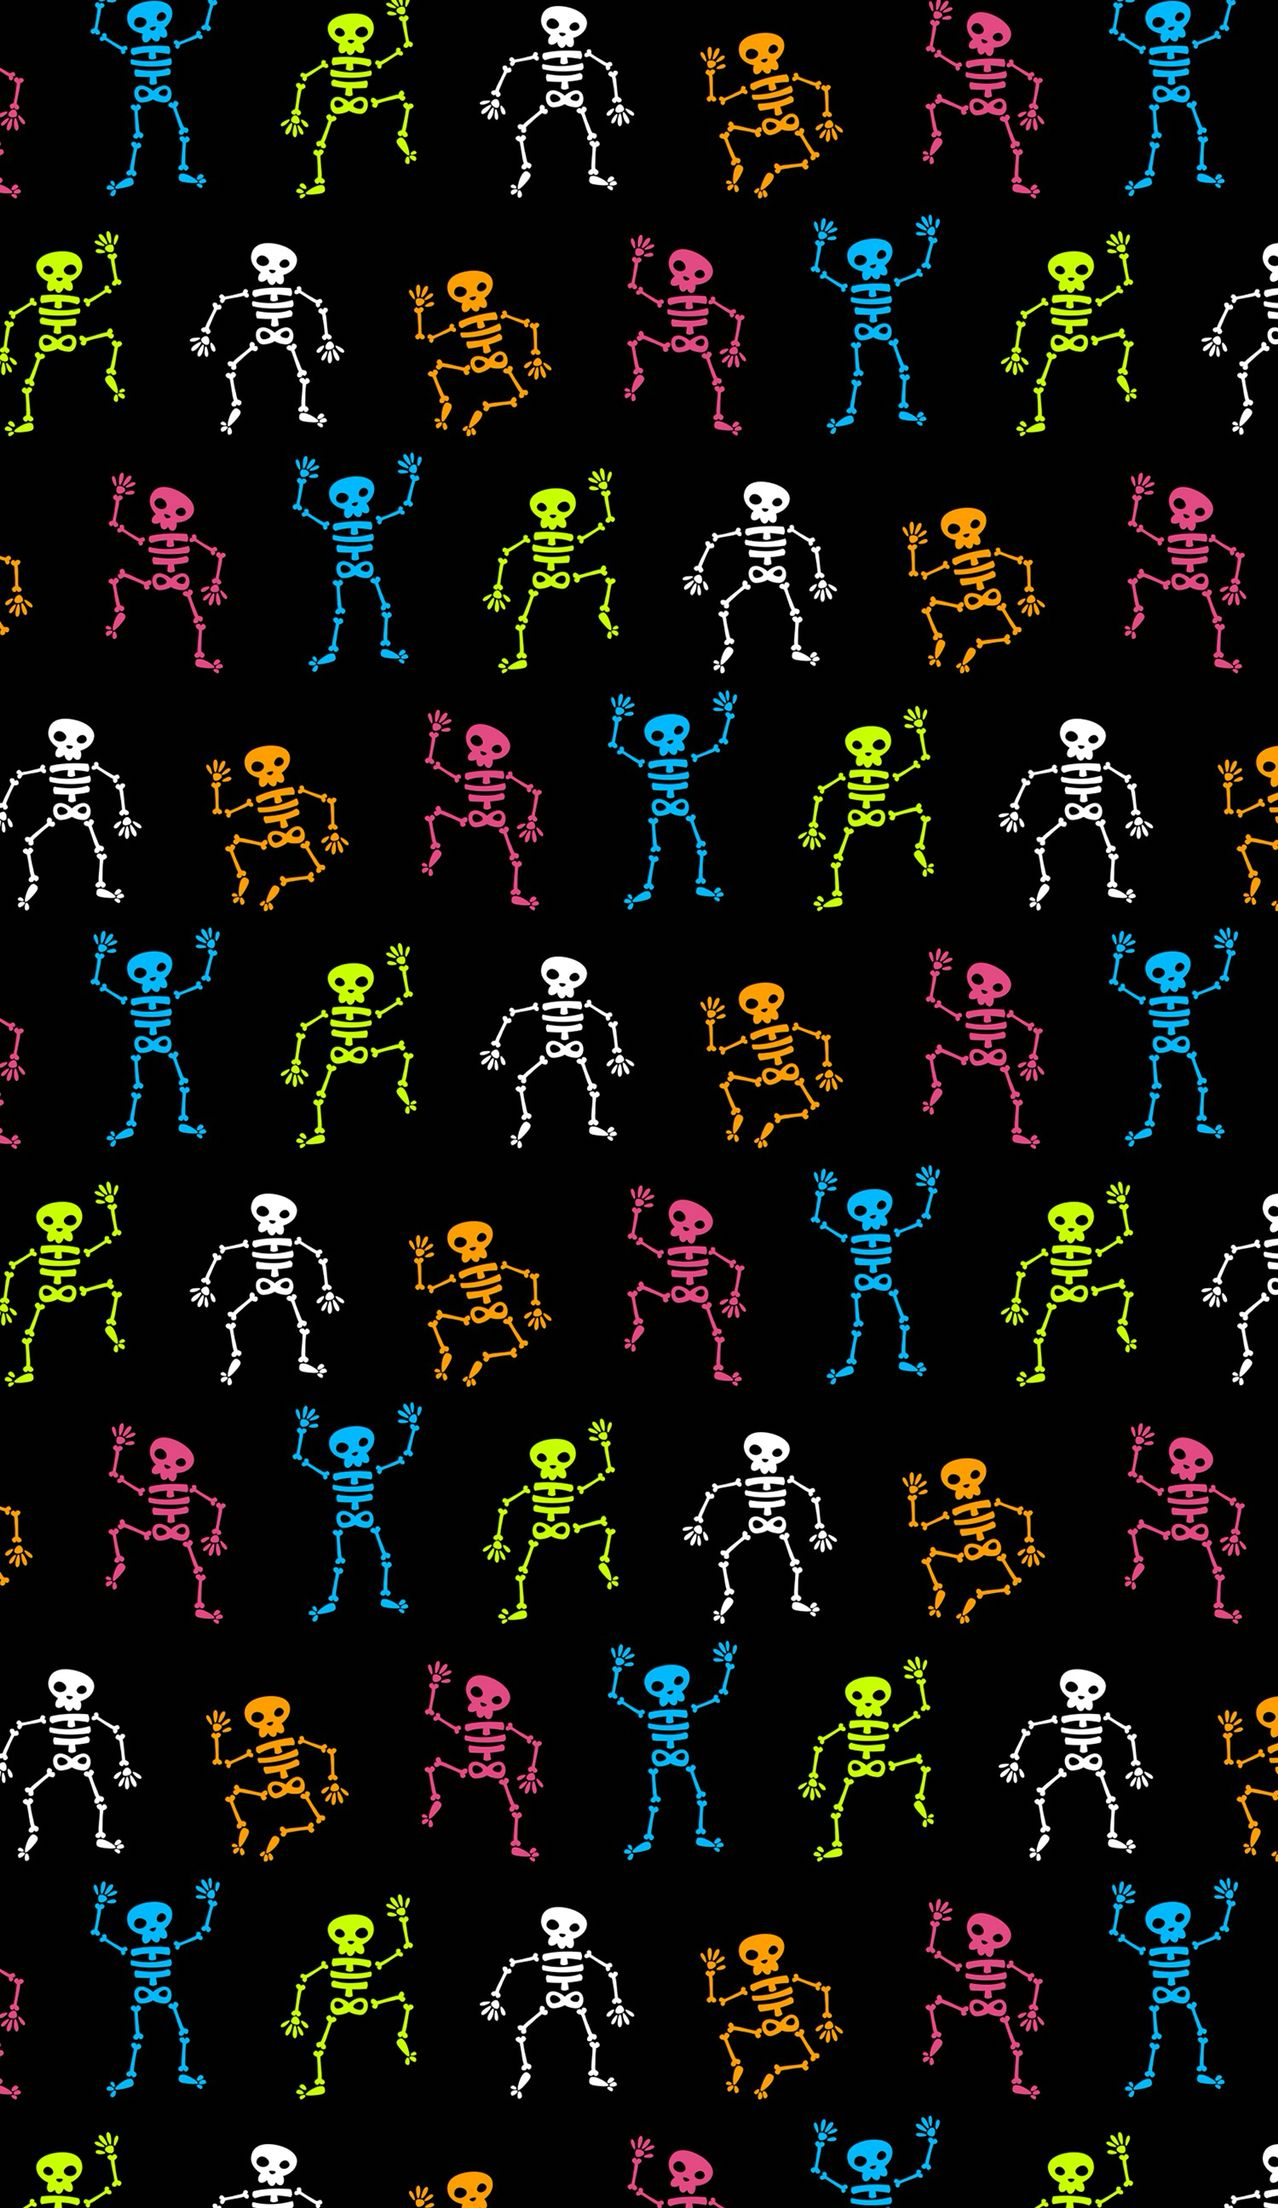 Popular Wallpaper Halloween Skeleton - 3cfda43dd5eec4eeedcda344d4f020a5  Image_213287.jpg